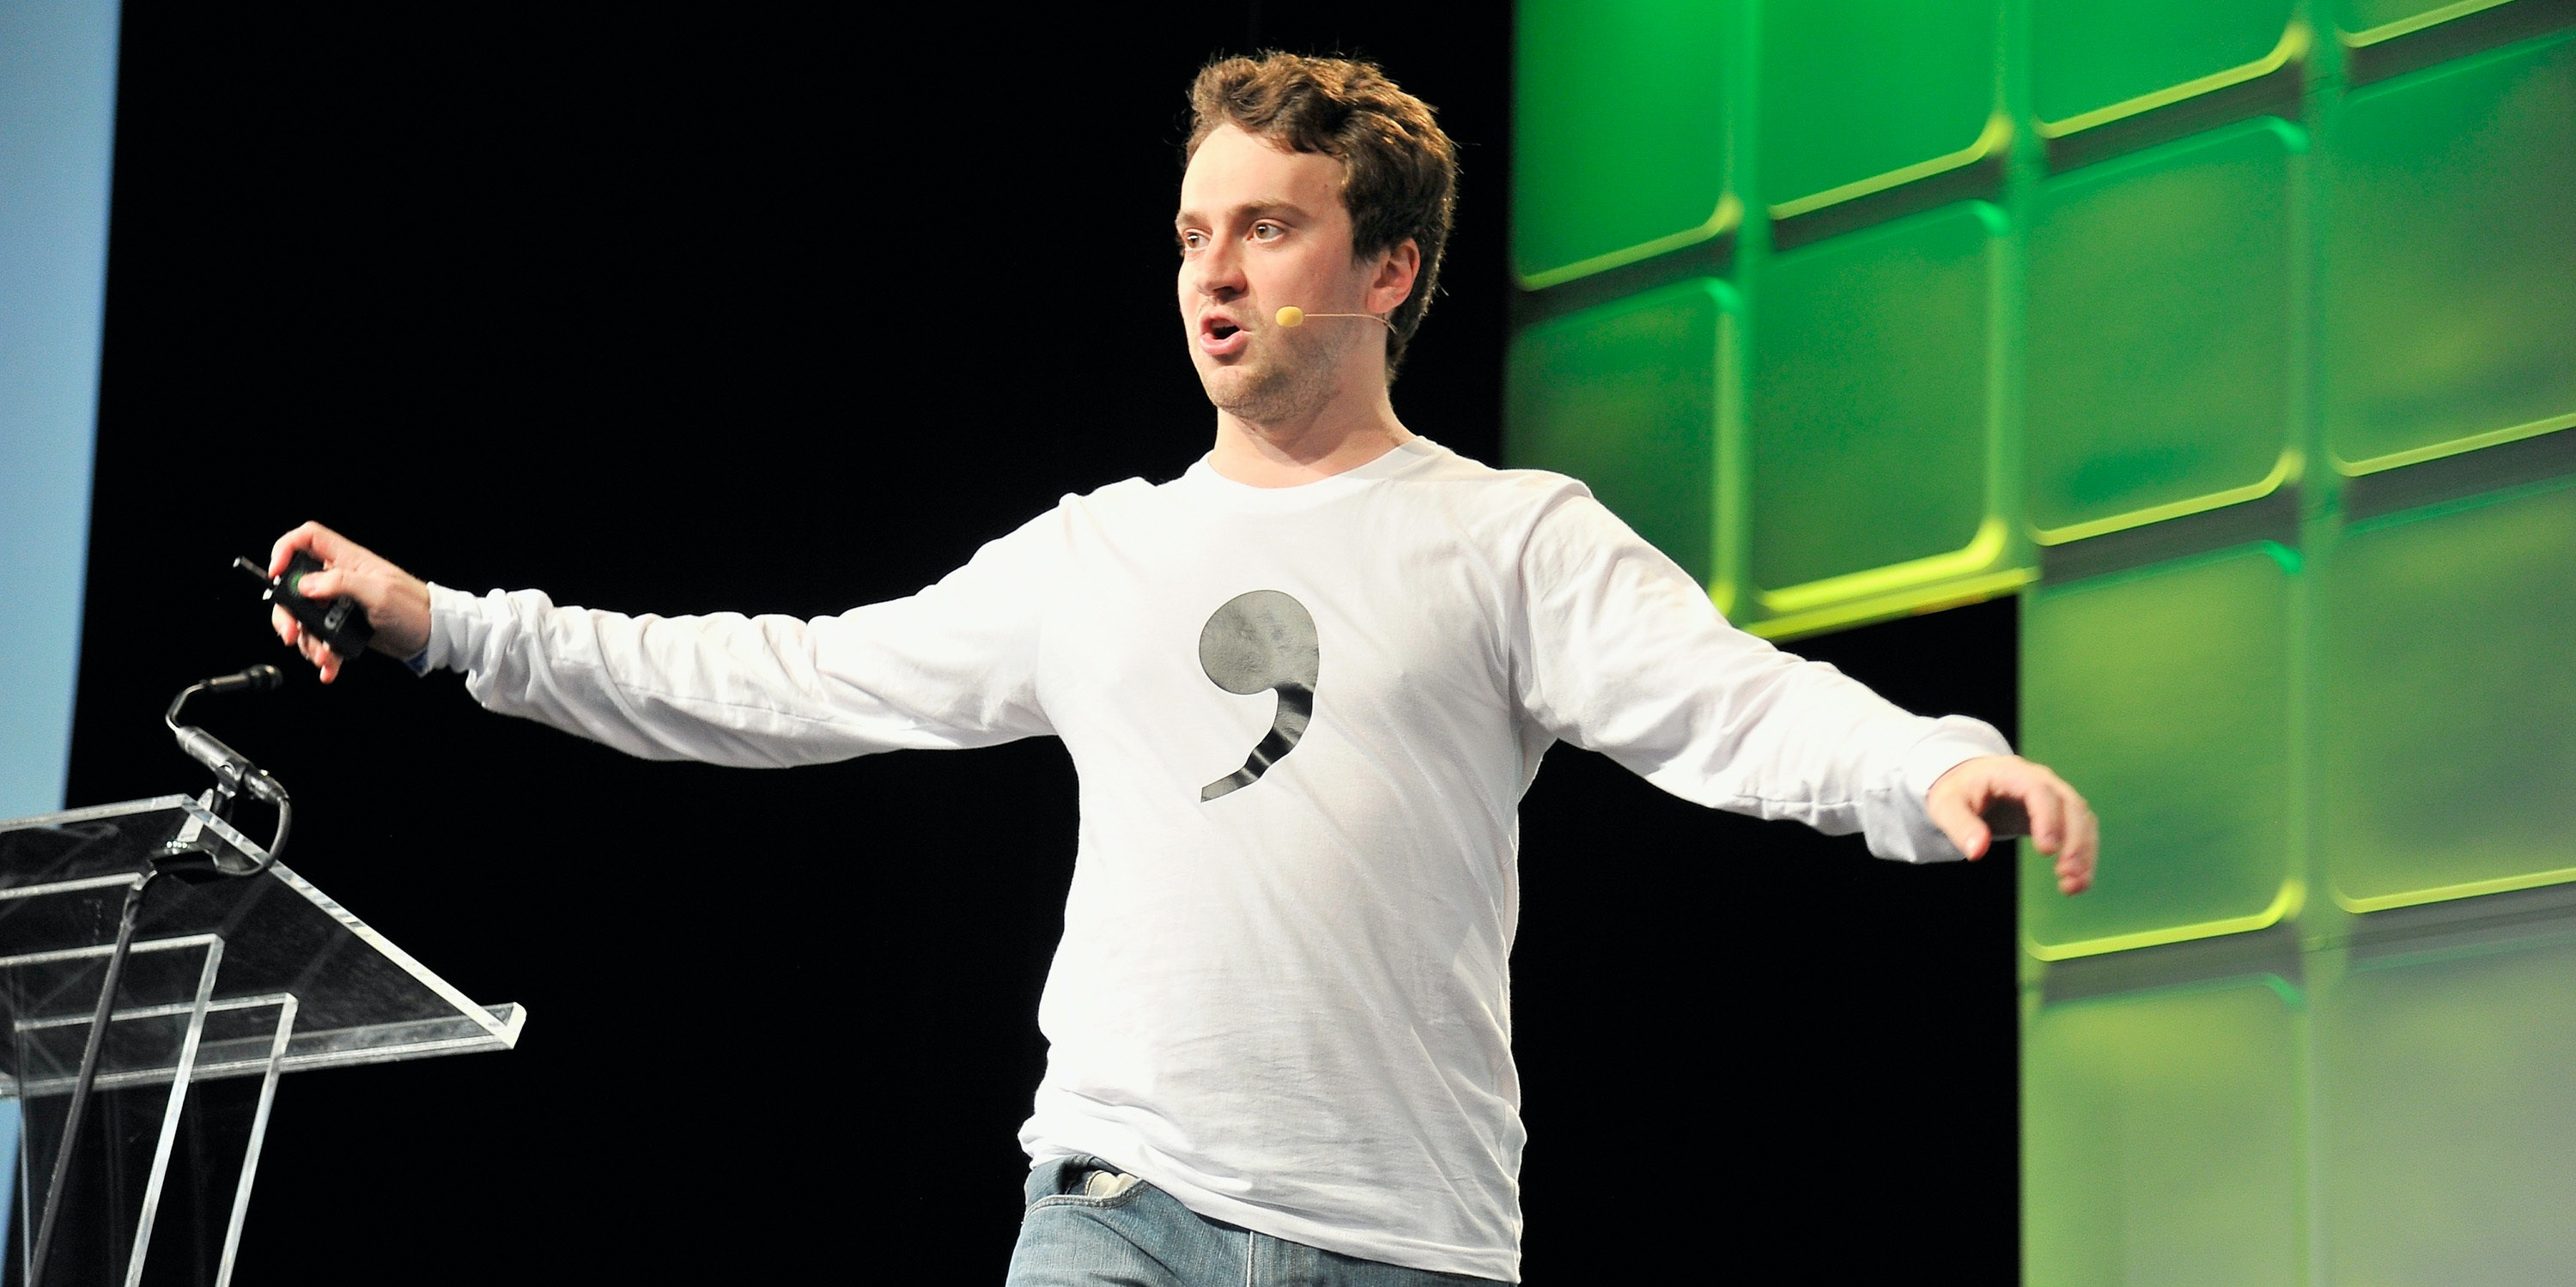 SAN FRANCISCO, CA - SEPTEMBER 13:  CEO of Comma.ai George 'Geohot' Hotz speaks onstage during TechCrunch Disrupt SF 2016 at Pier 48 on September 13, 2016 in San Francisco, California.  (Photo by Steve Jennings/Getty Images for TechCrunch)